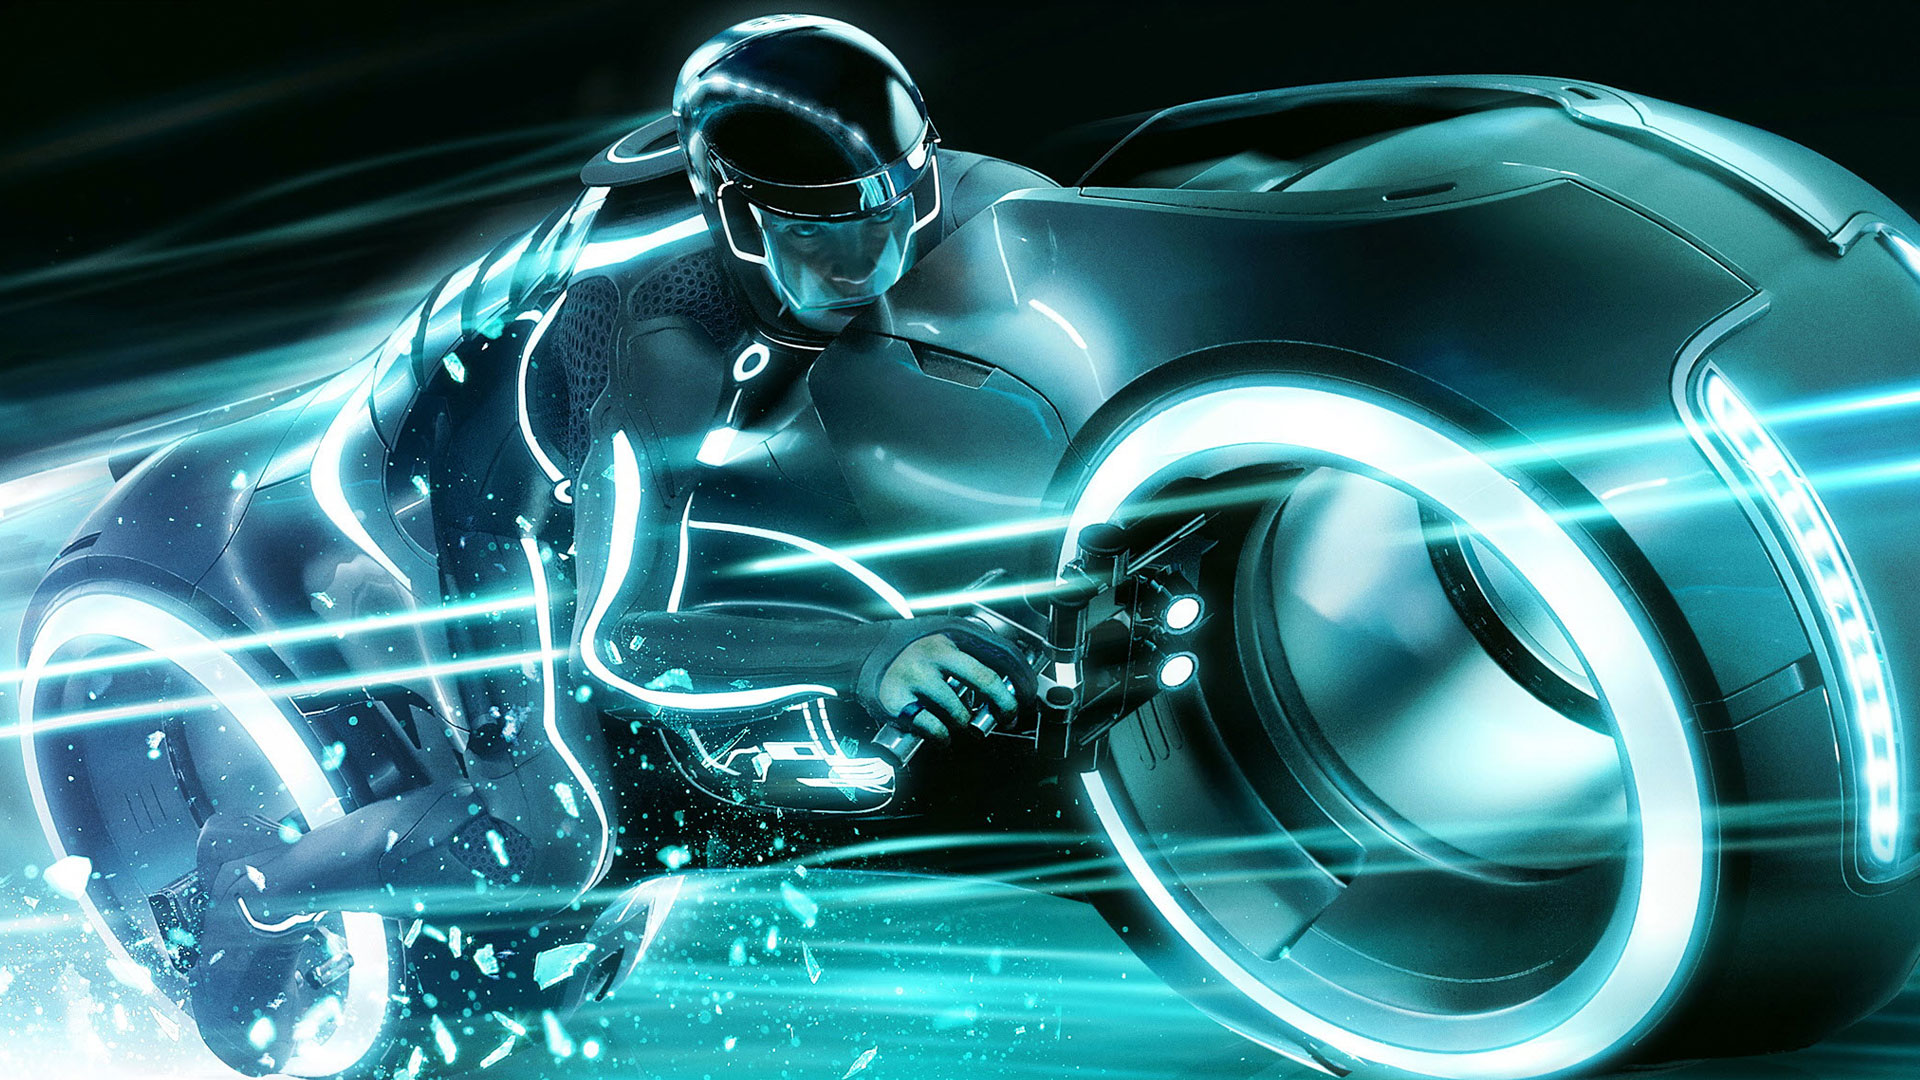 Tron Legacy HD 1080p Wallpapers HD Wallpapers 1920x1080